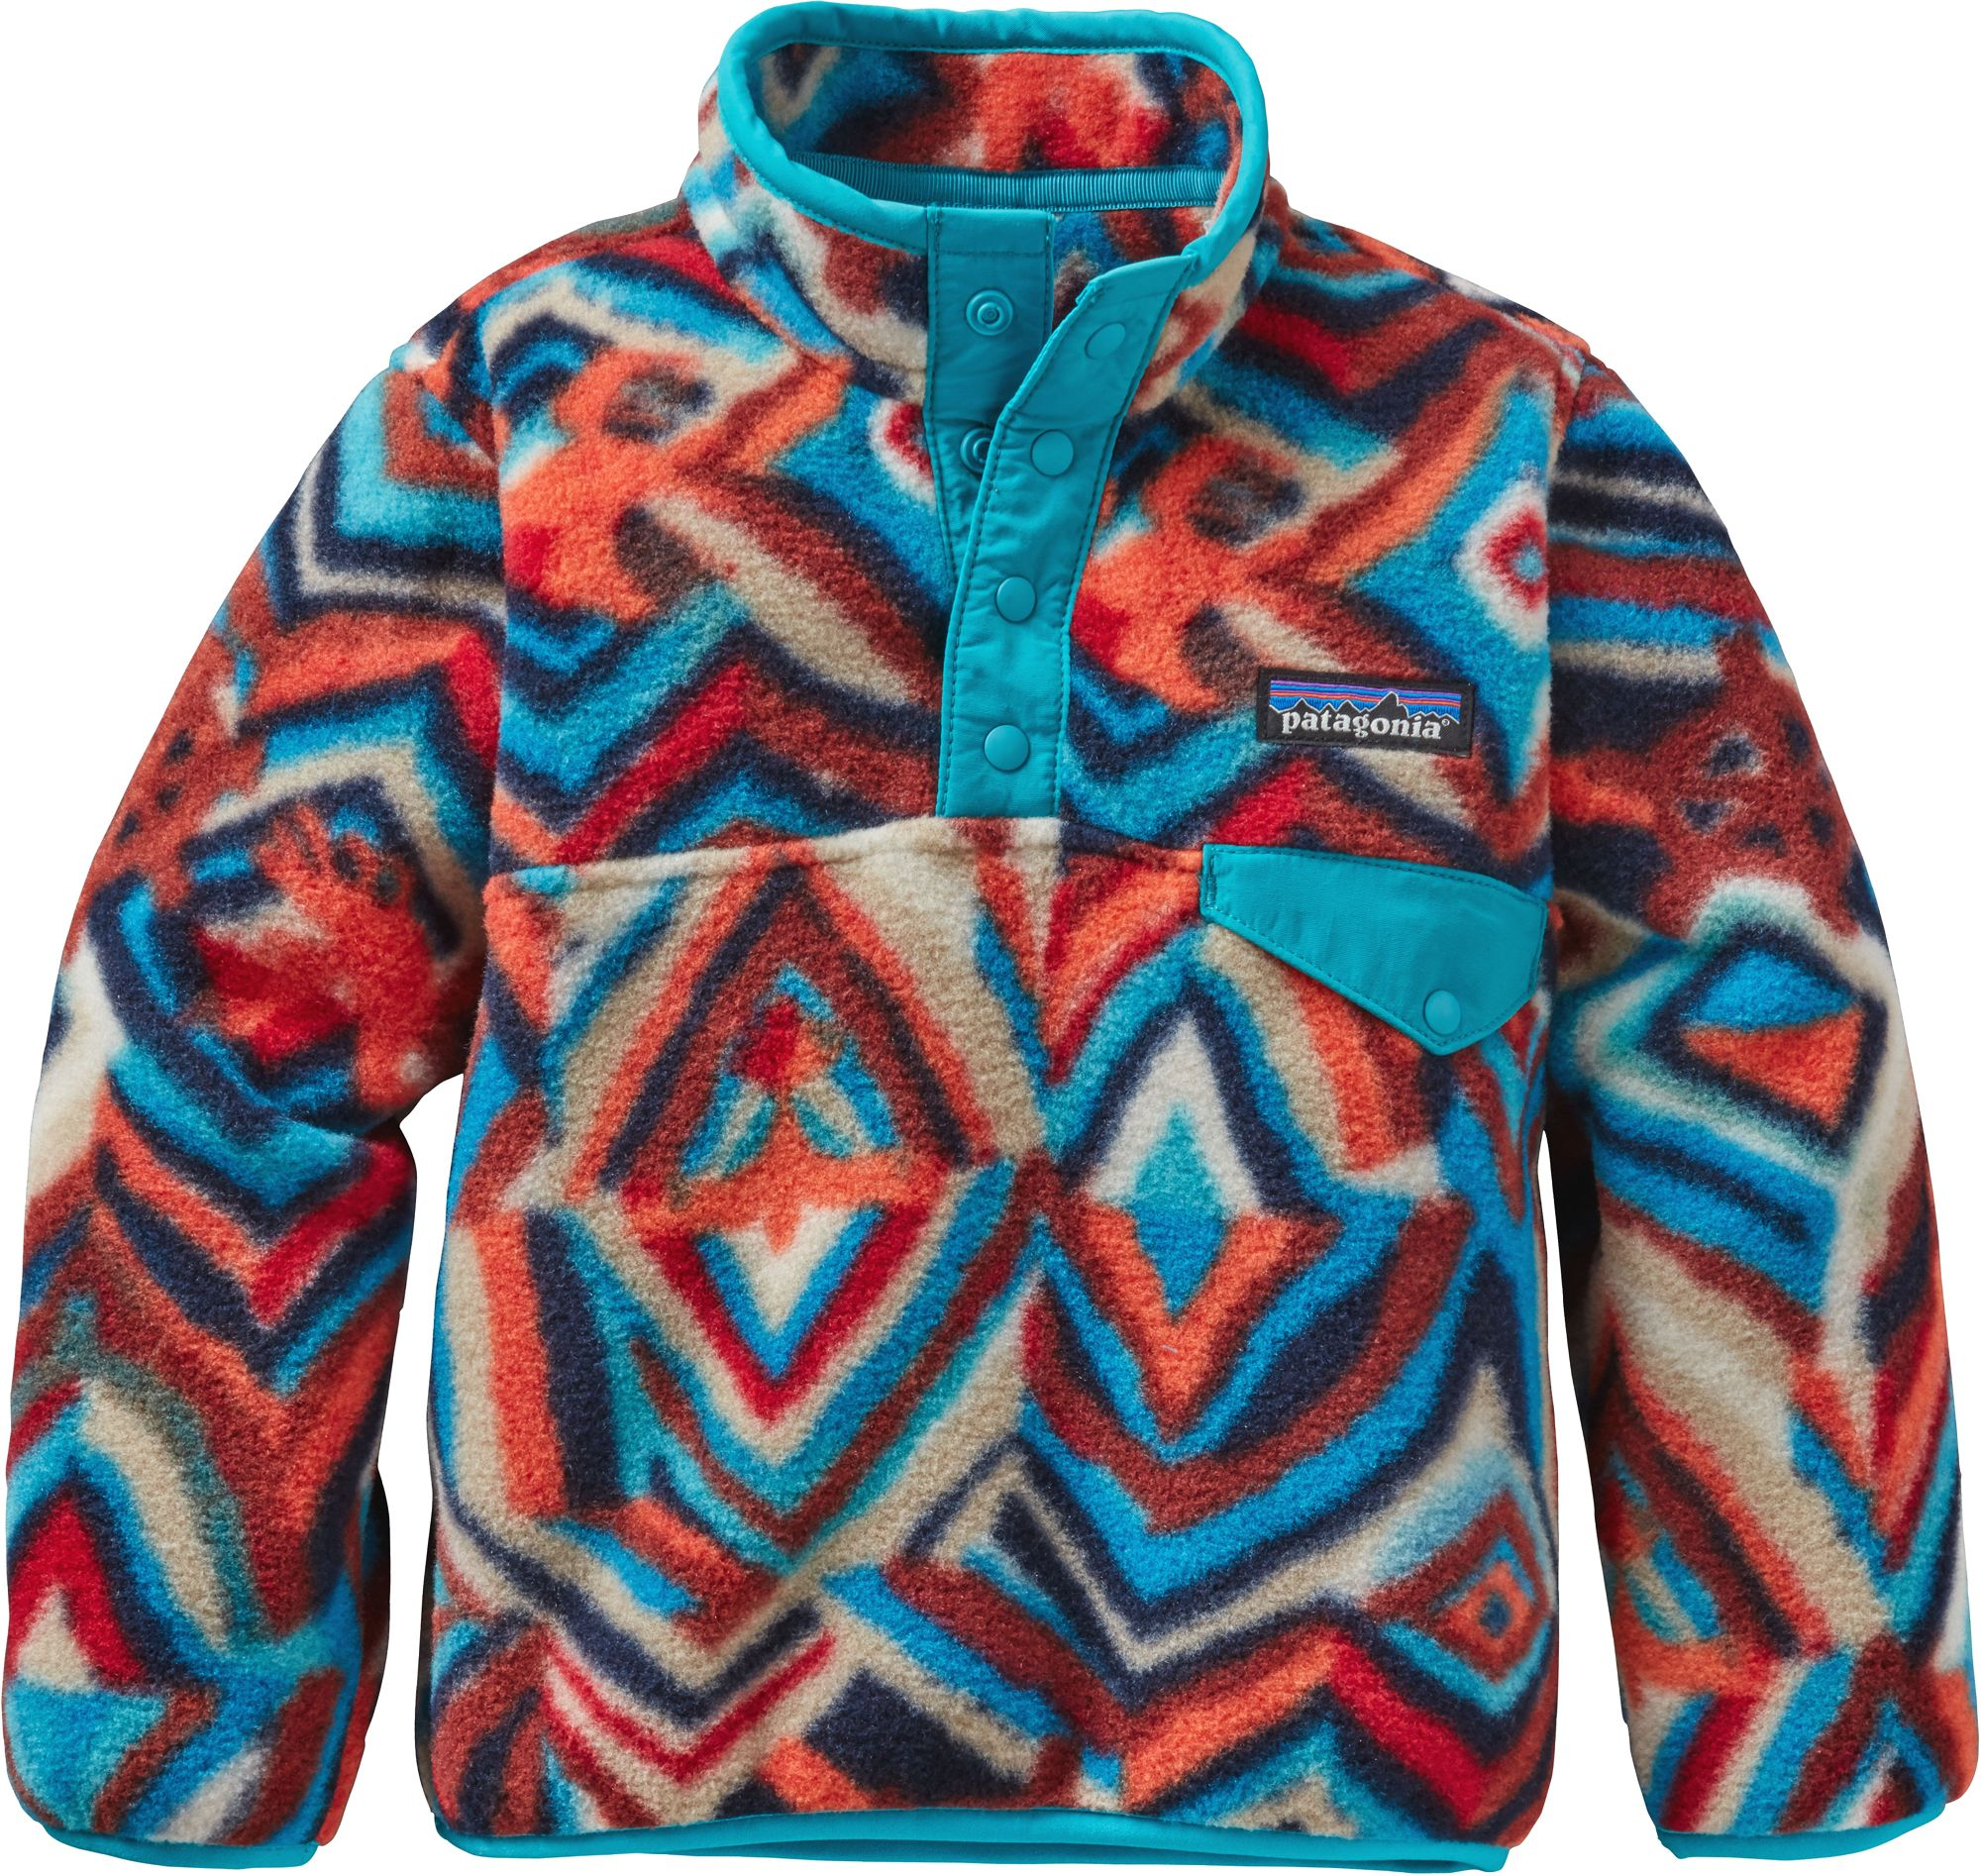 Patagonia Toddler Boys' Synchilla Snap-T Pullover Fleece | DICK'S ...